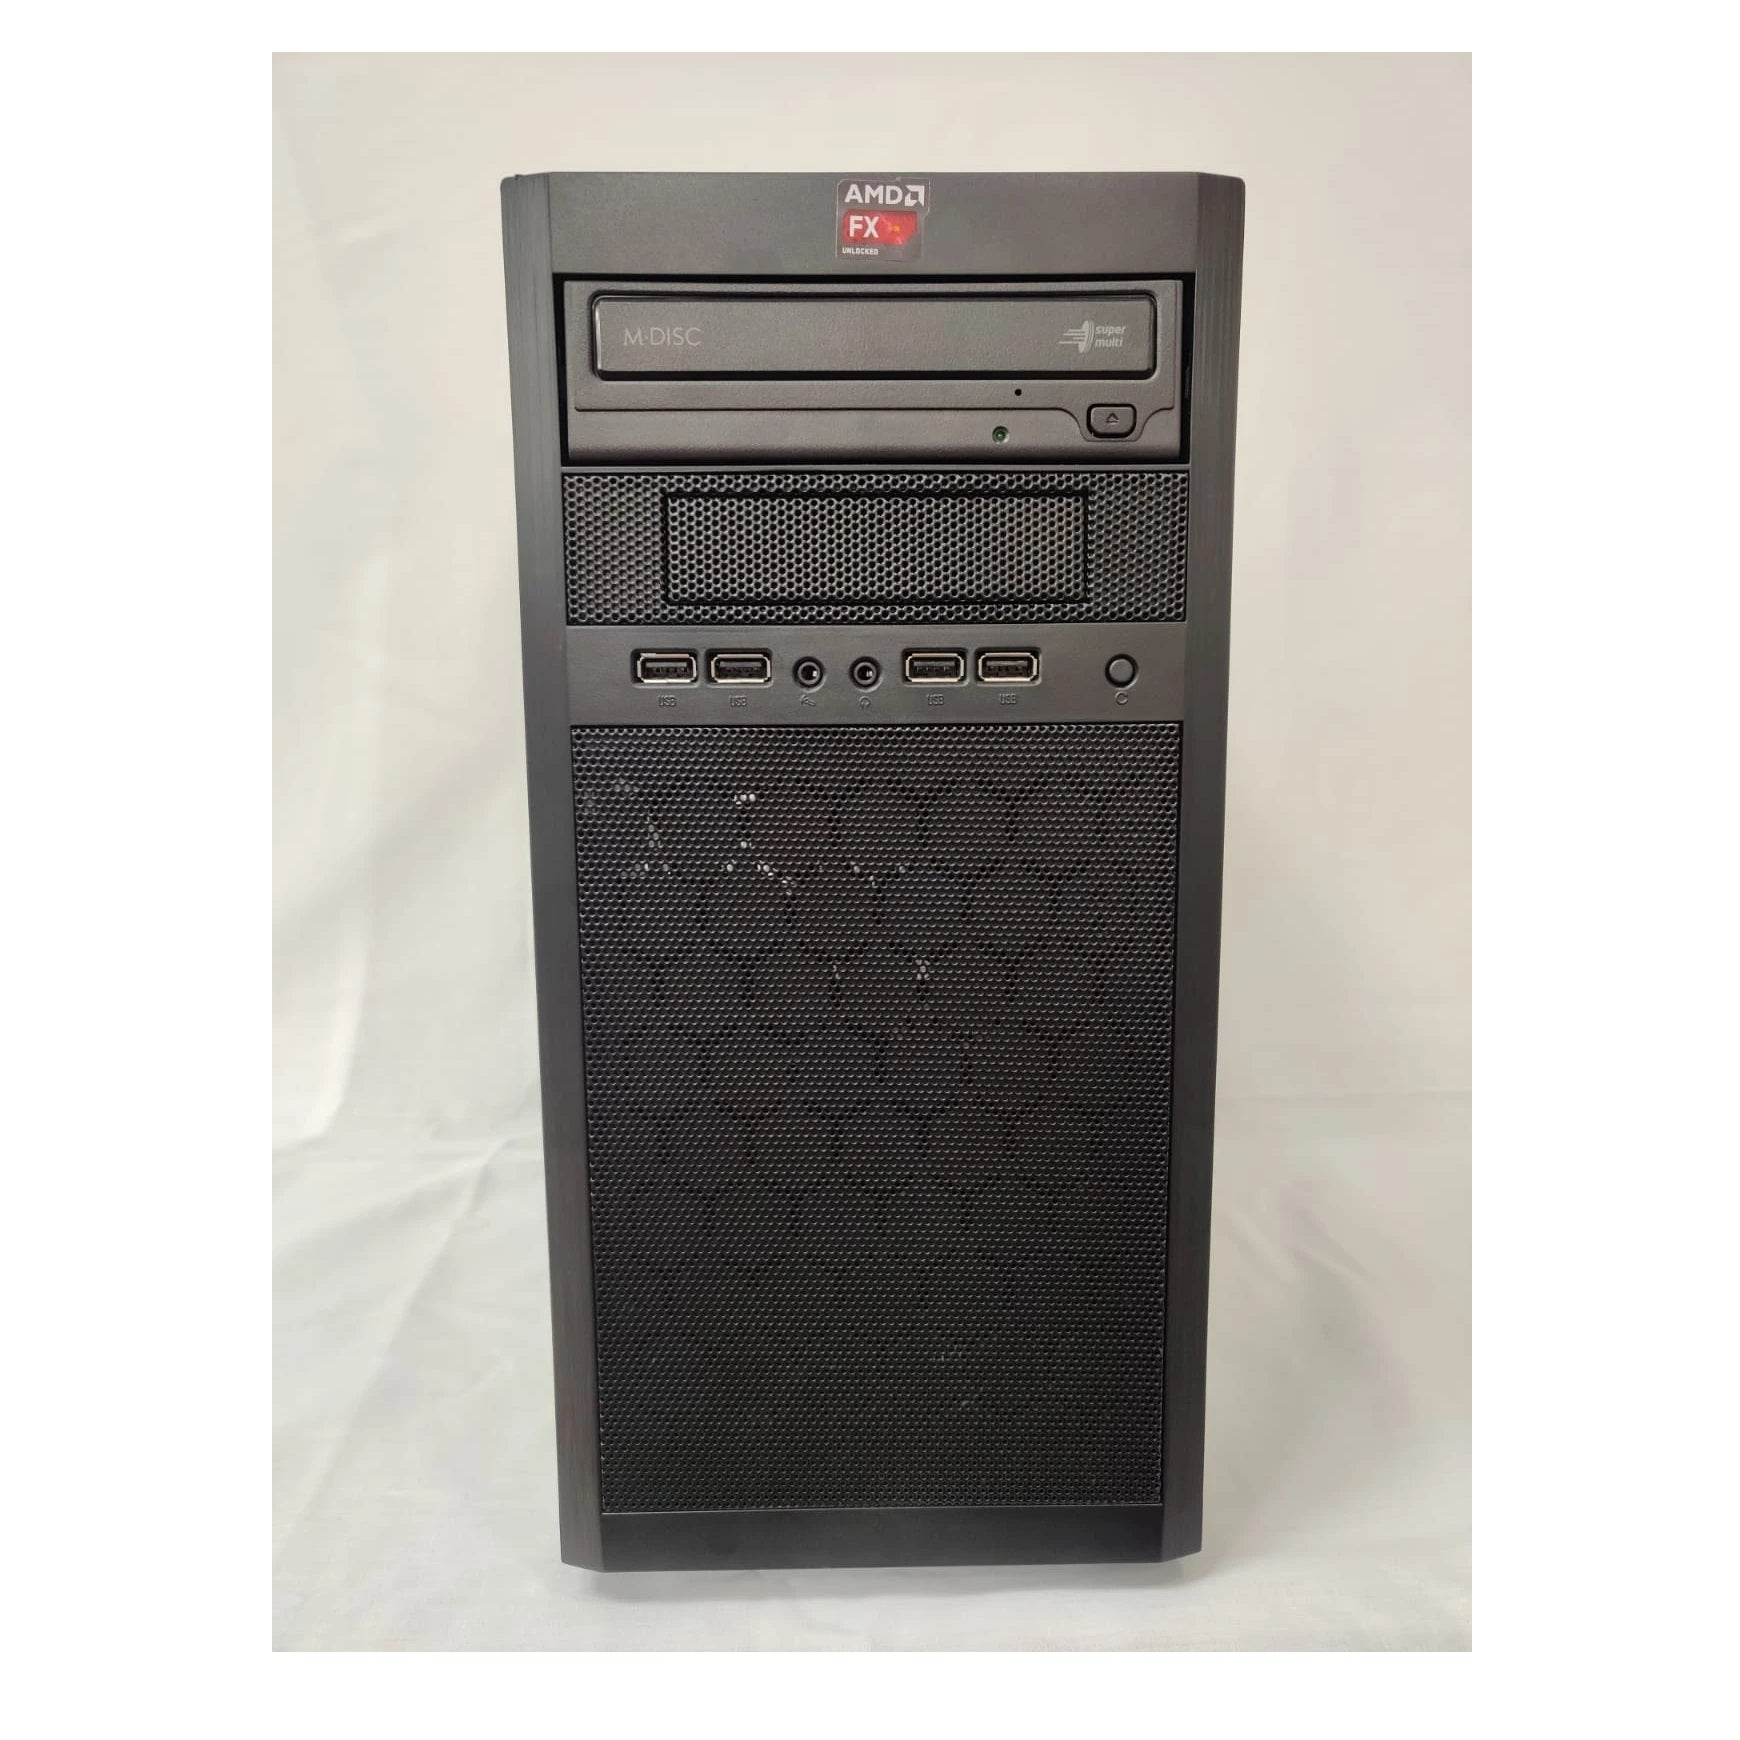 PC Tower AMD FX4300 1TB HDD 8gb Ram Windows 10 Preowned Collection Only